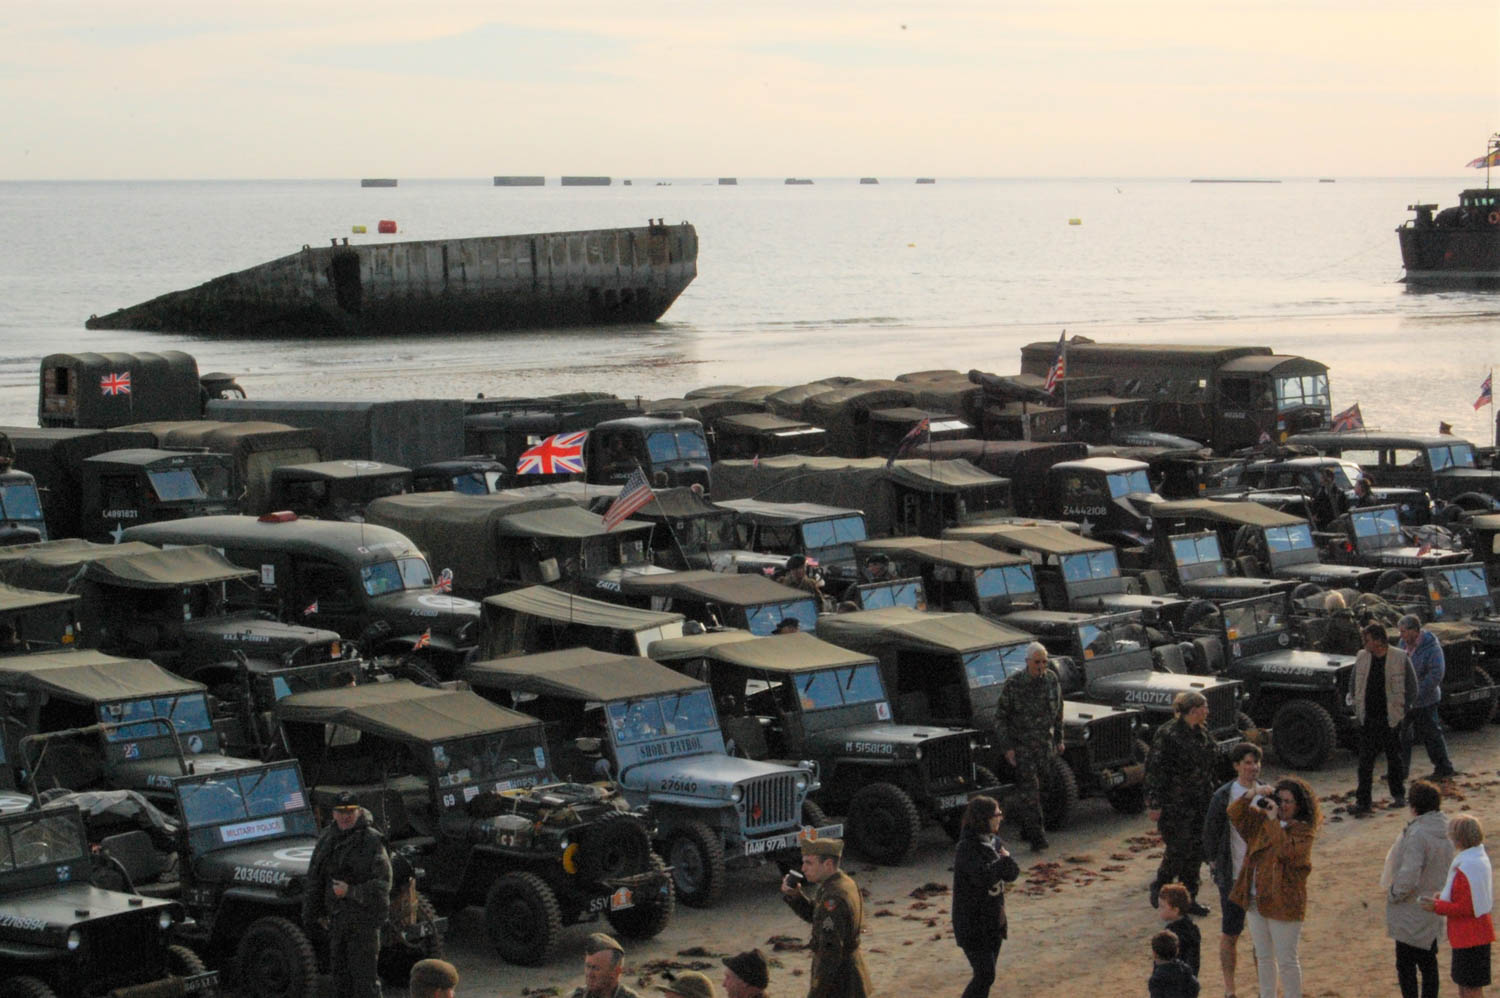 Hundreds of vehicles take the beach at Arromanches in the British sector for a commemoration on June 6, 2014. Behind them is the remains of a Mulberry, part of a system of floating concrete piers that was used to turn Normandy's beaches into a bustling port for war supplies.